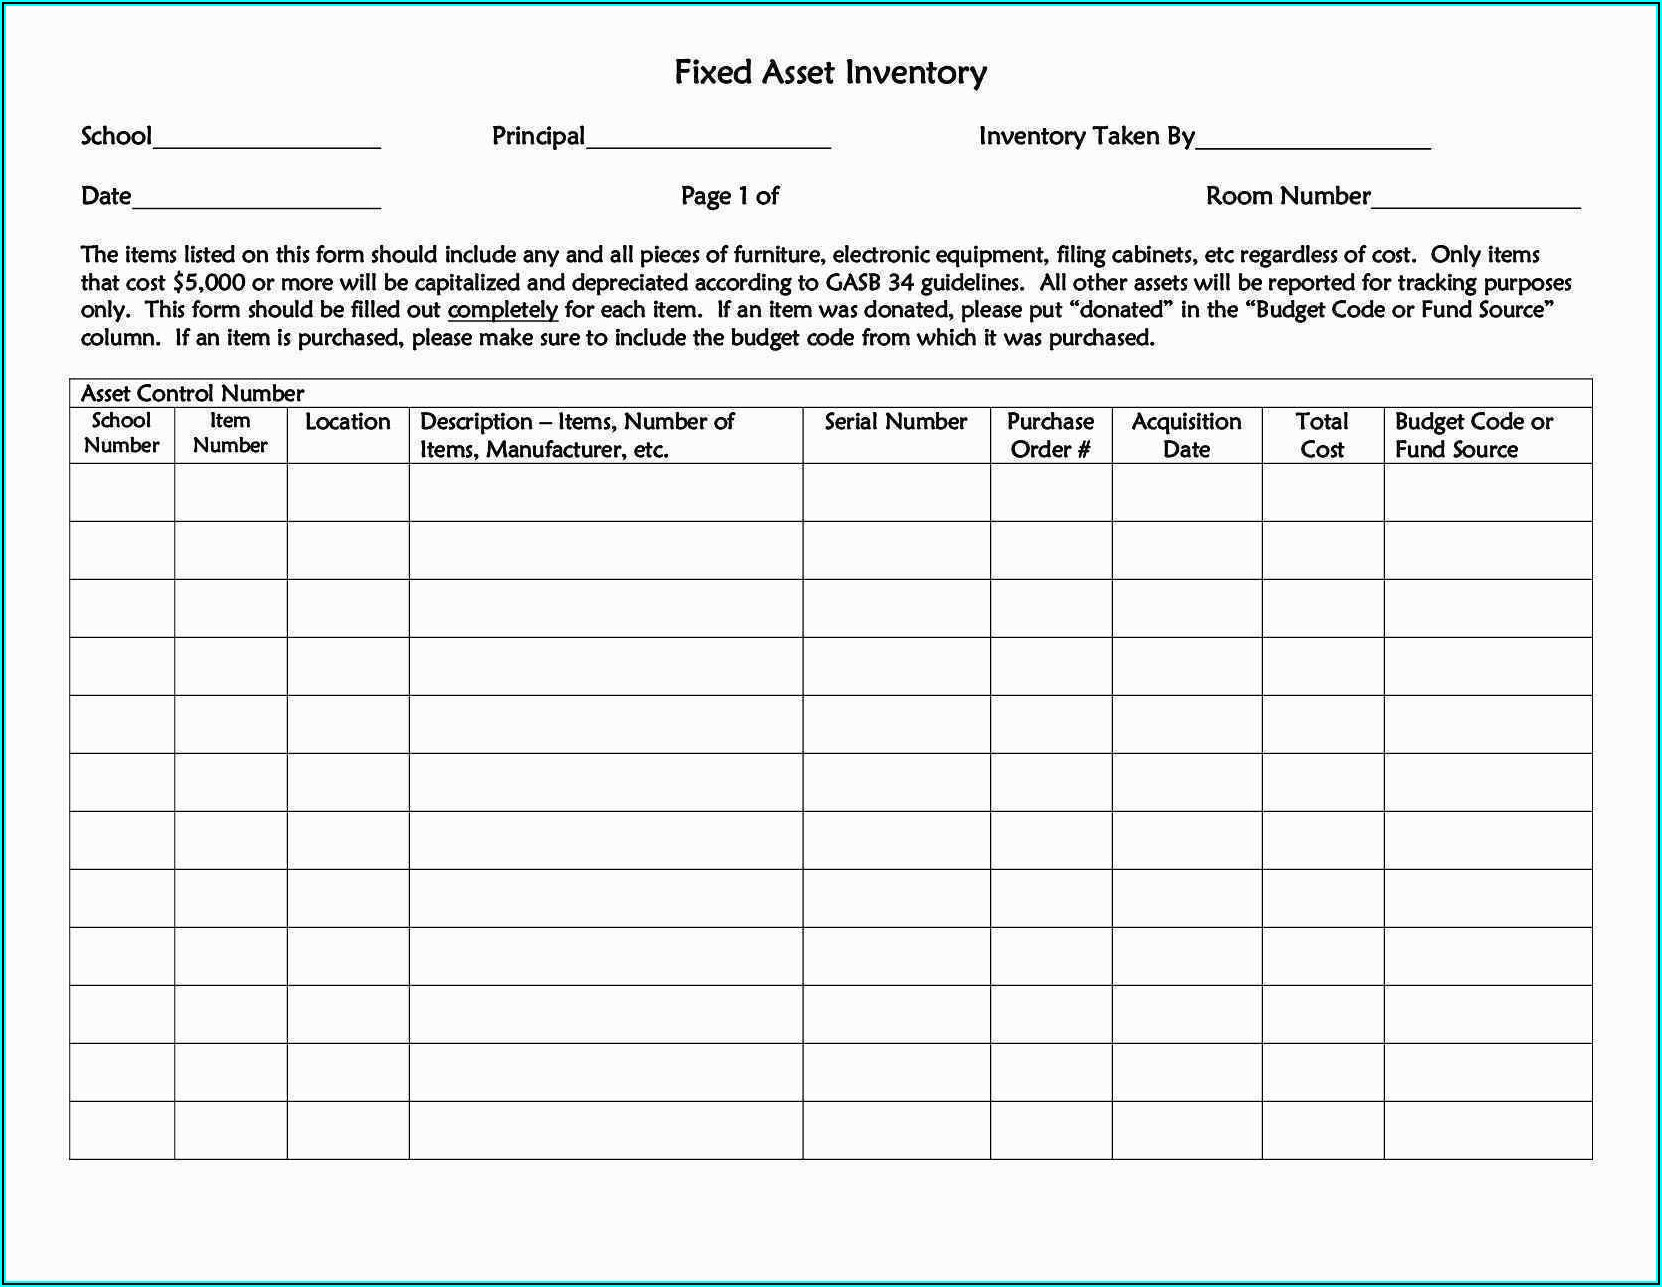 Fixed Asset Inventory Excel Template